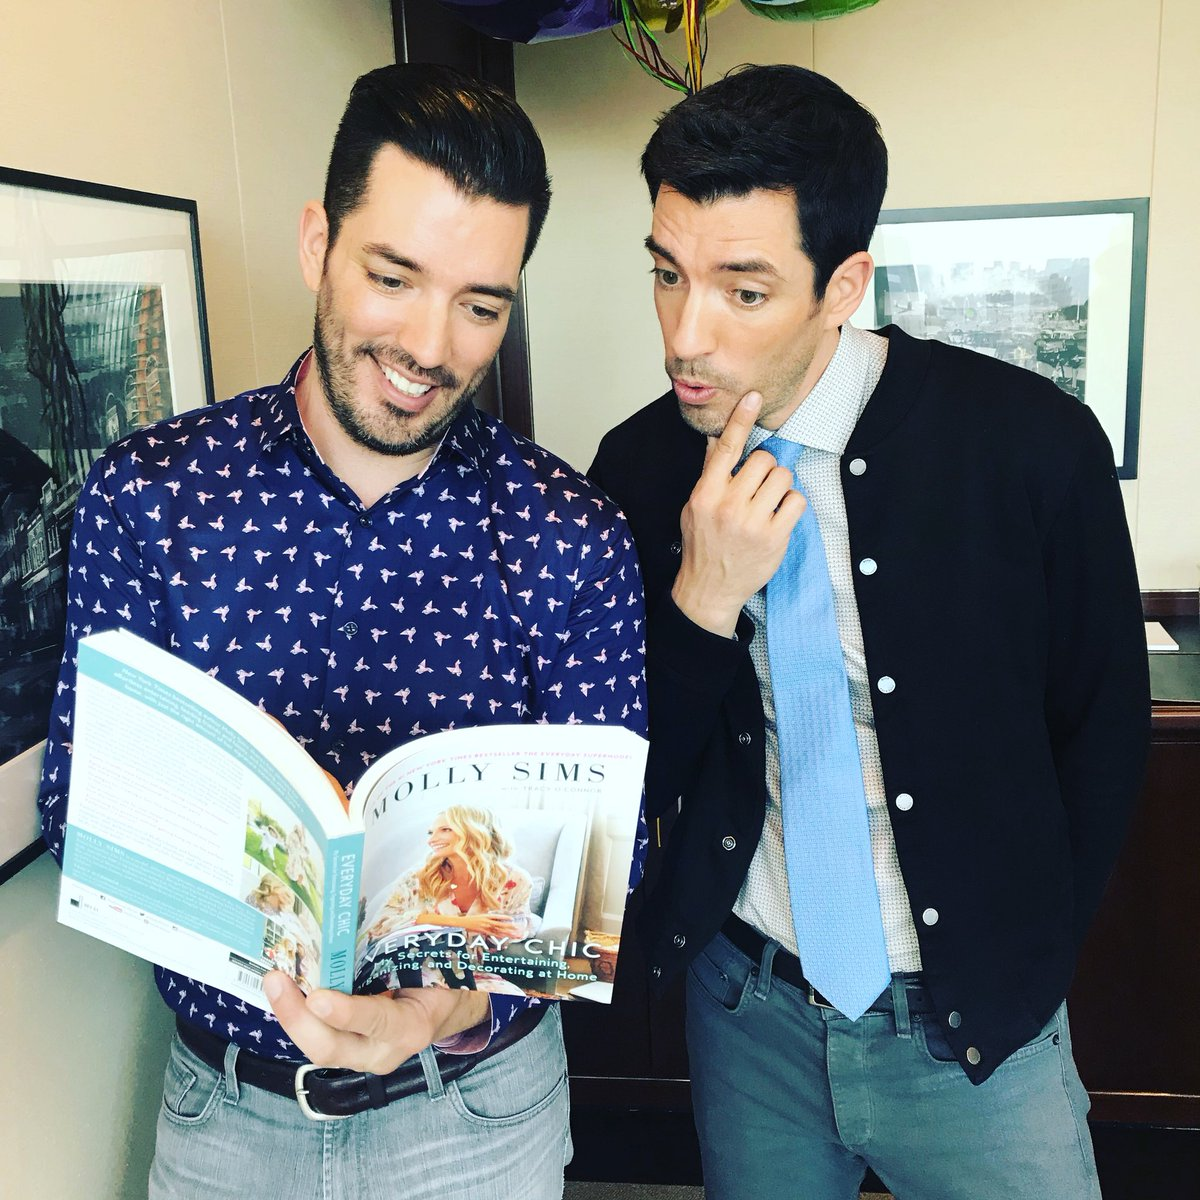 RT @MrSilverScott: Thanks @mollybsims for helping us prep to entertain the family with Everyday Chic. Love the read! https://t.co/c4q2YjenH6